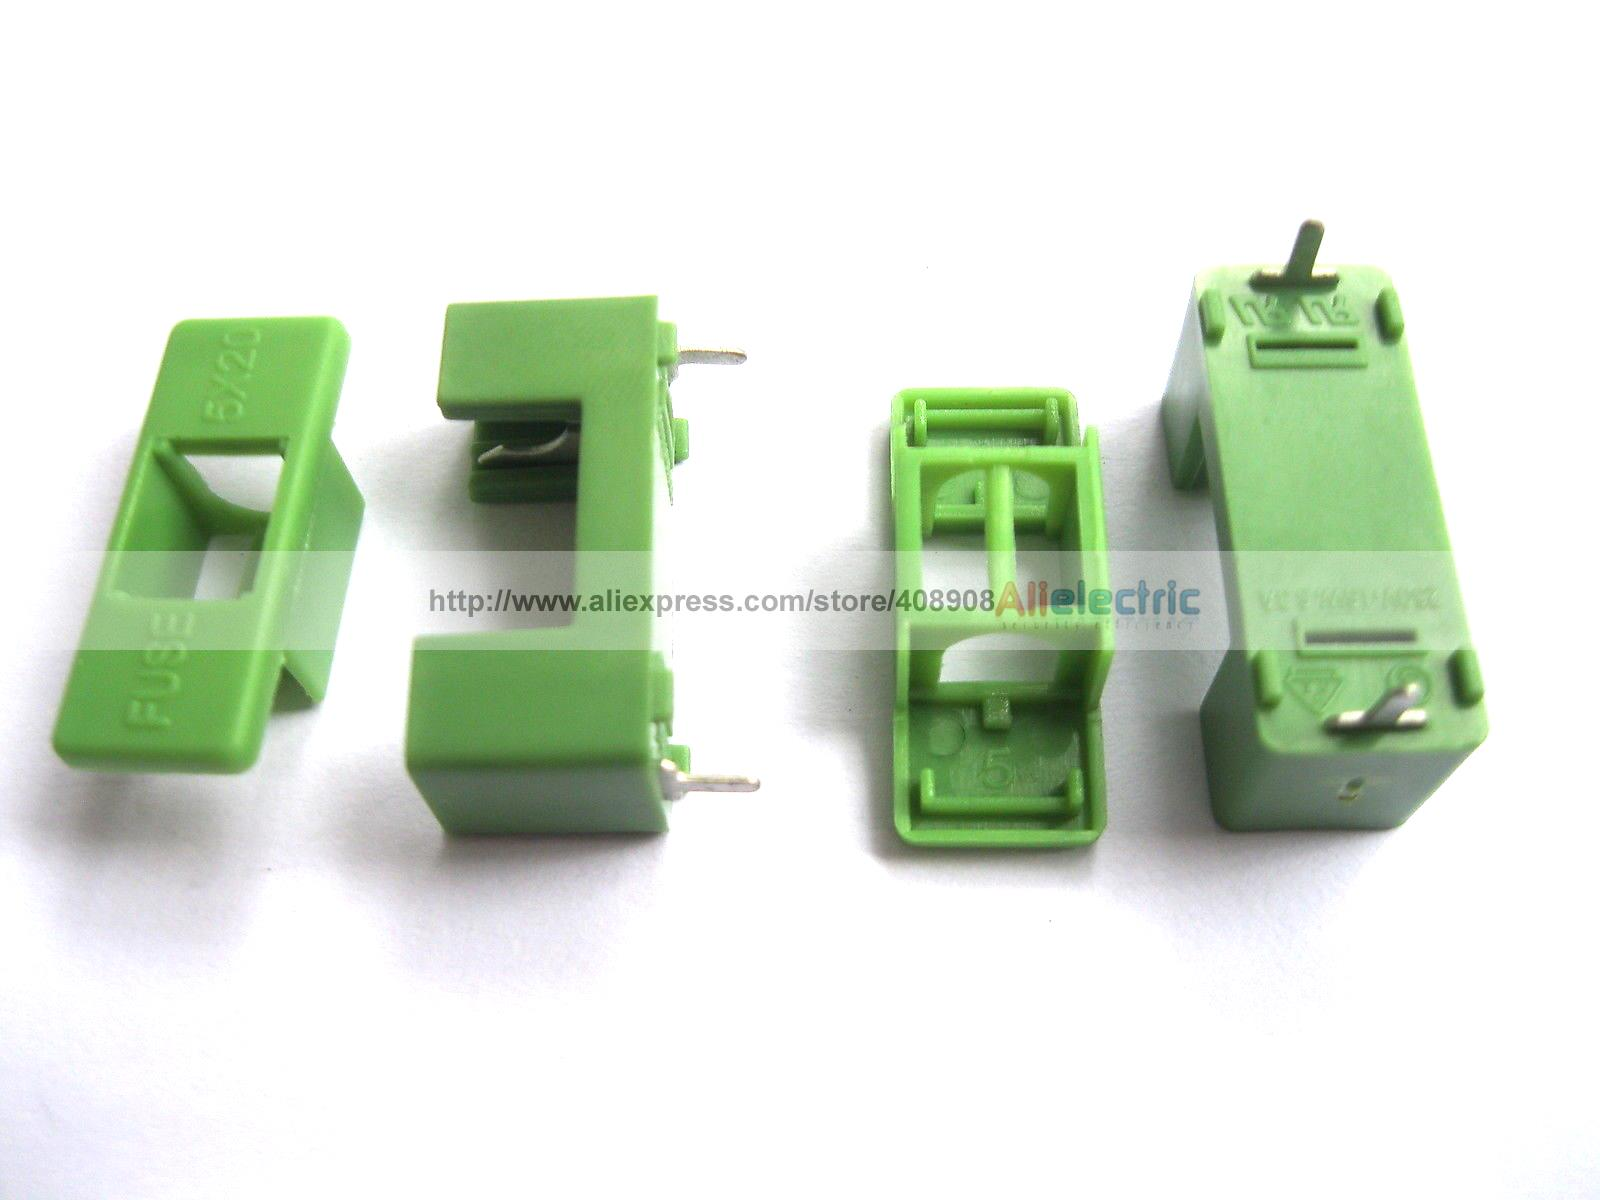 100 Pcs PTF 7 DIP Fuse Holder 6 3A 250V Used for 5x20 Green Color 4n32 dip 6